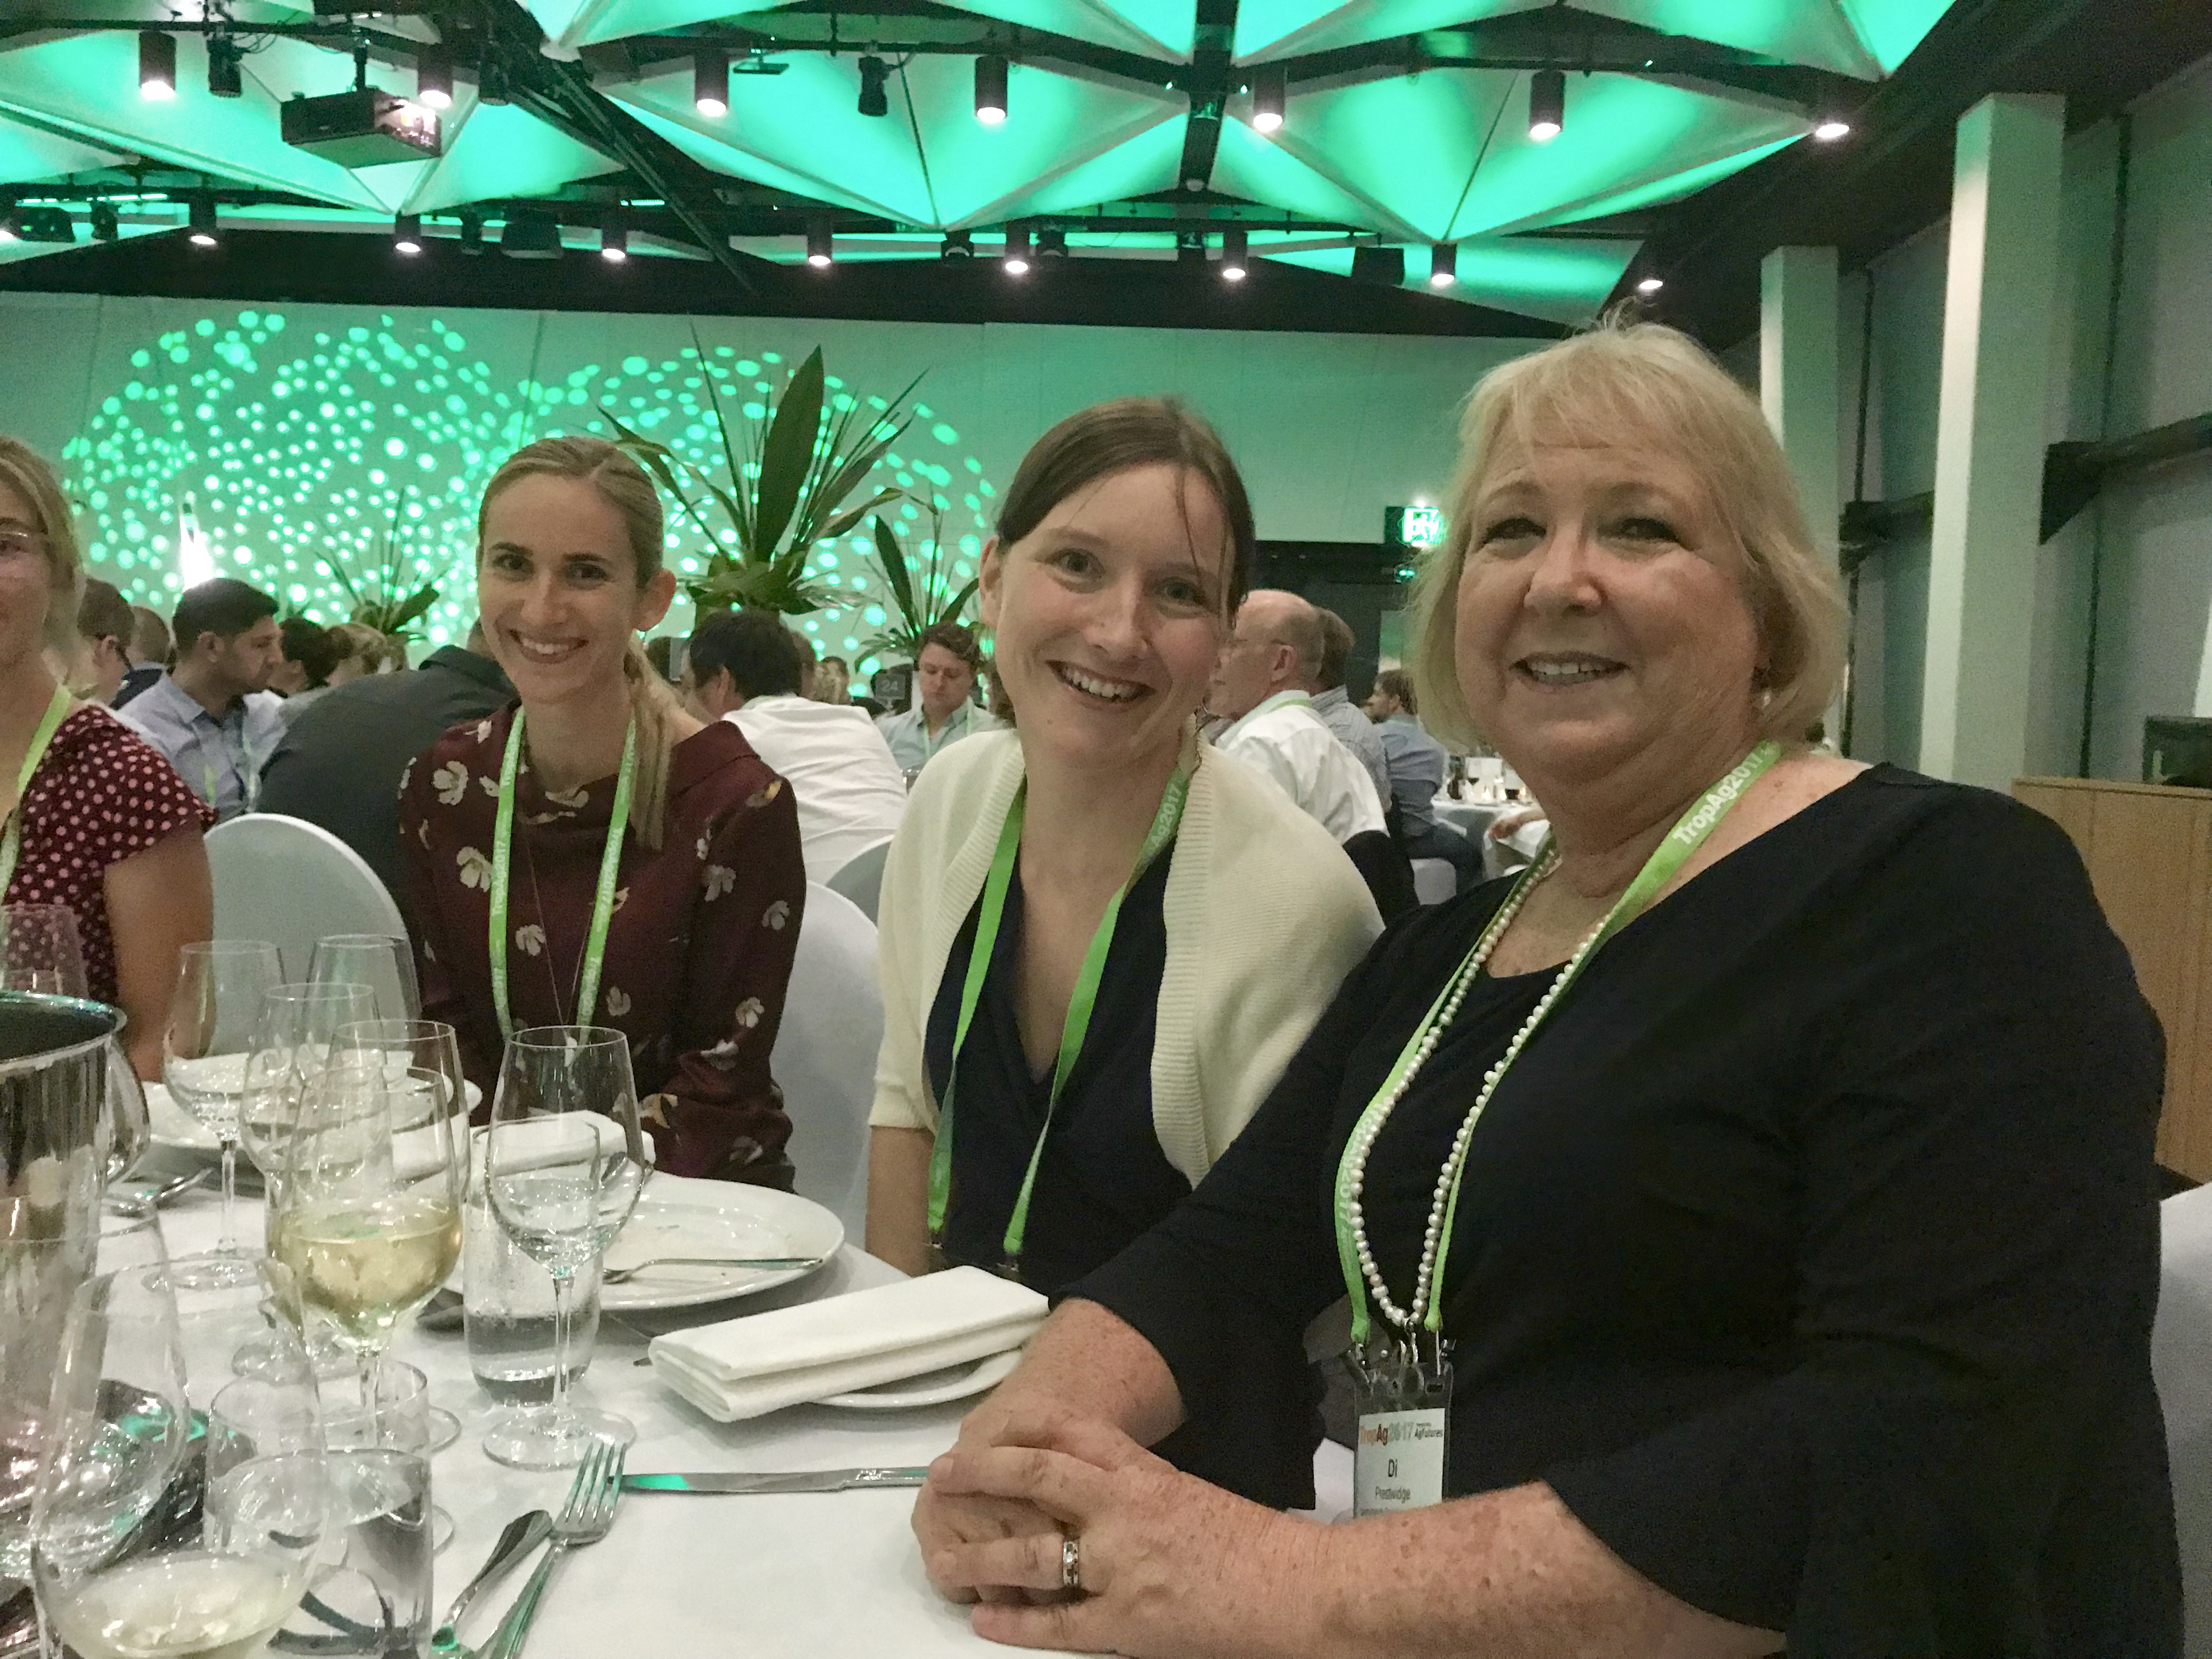 Di Prestwidge, Katharina Waha, and Cécile Godde at the TropAg2017 conference dinner